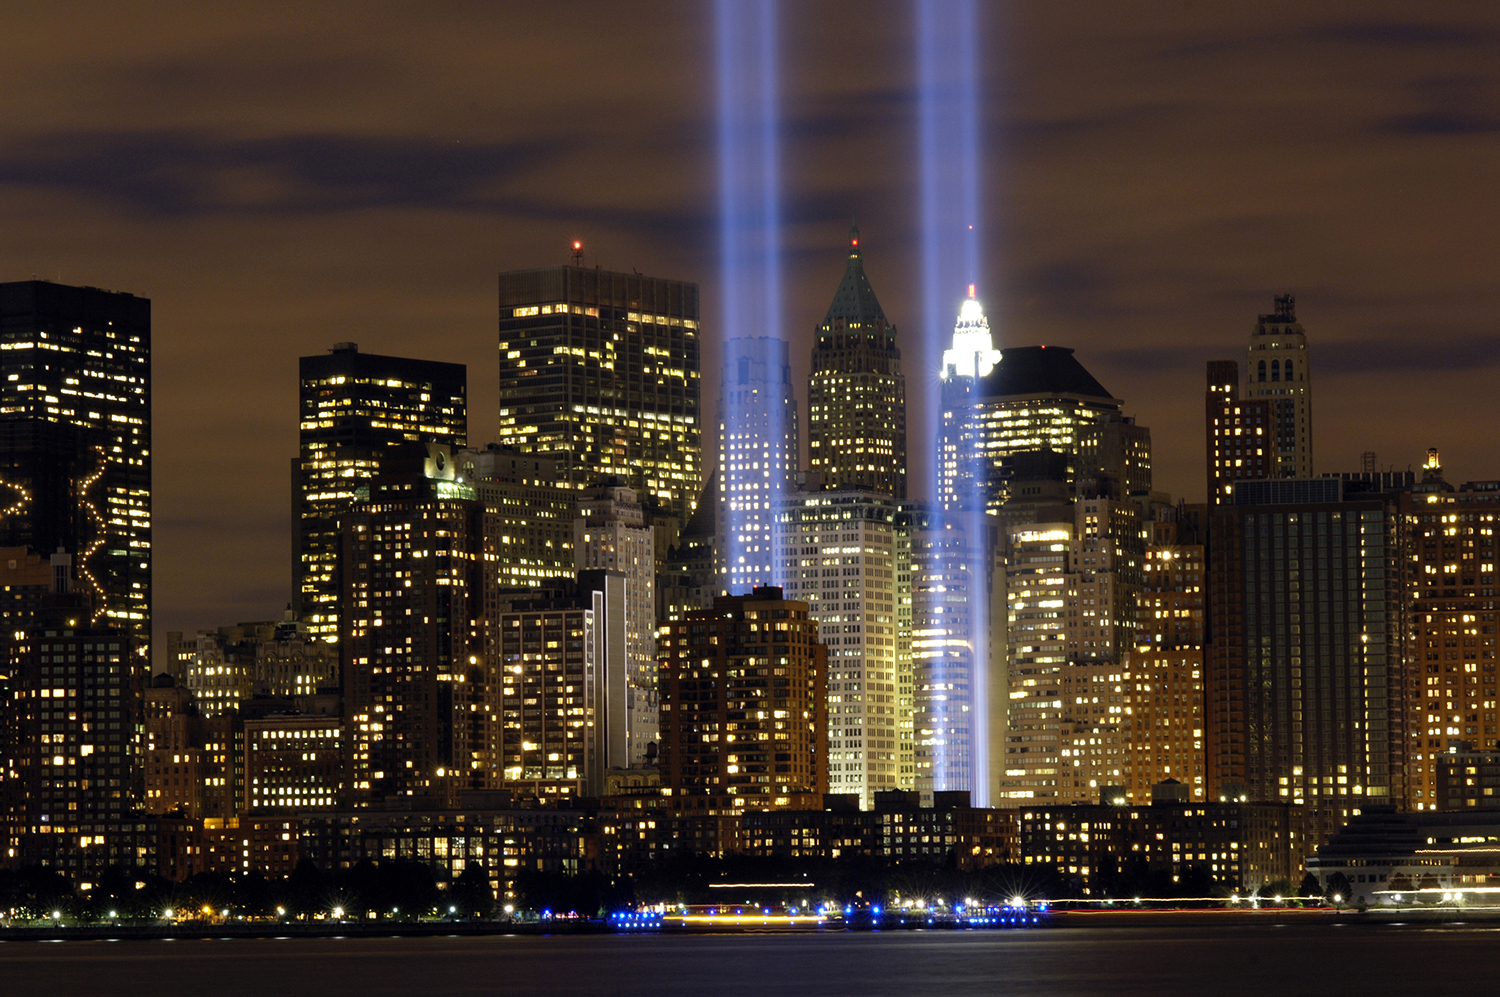 Two Decades Later: A Reflection on 9/11